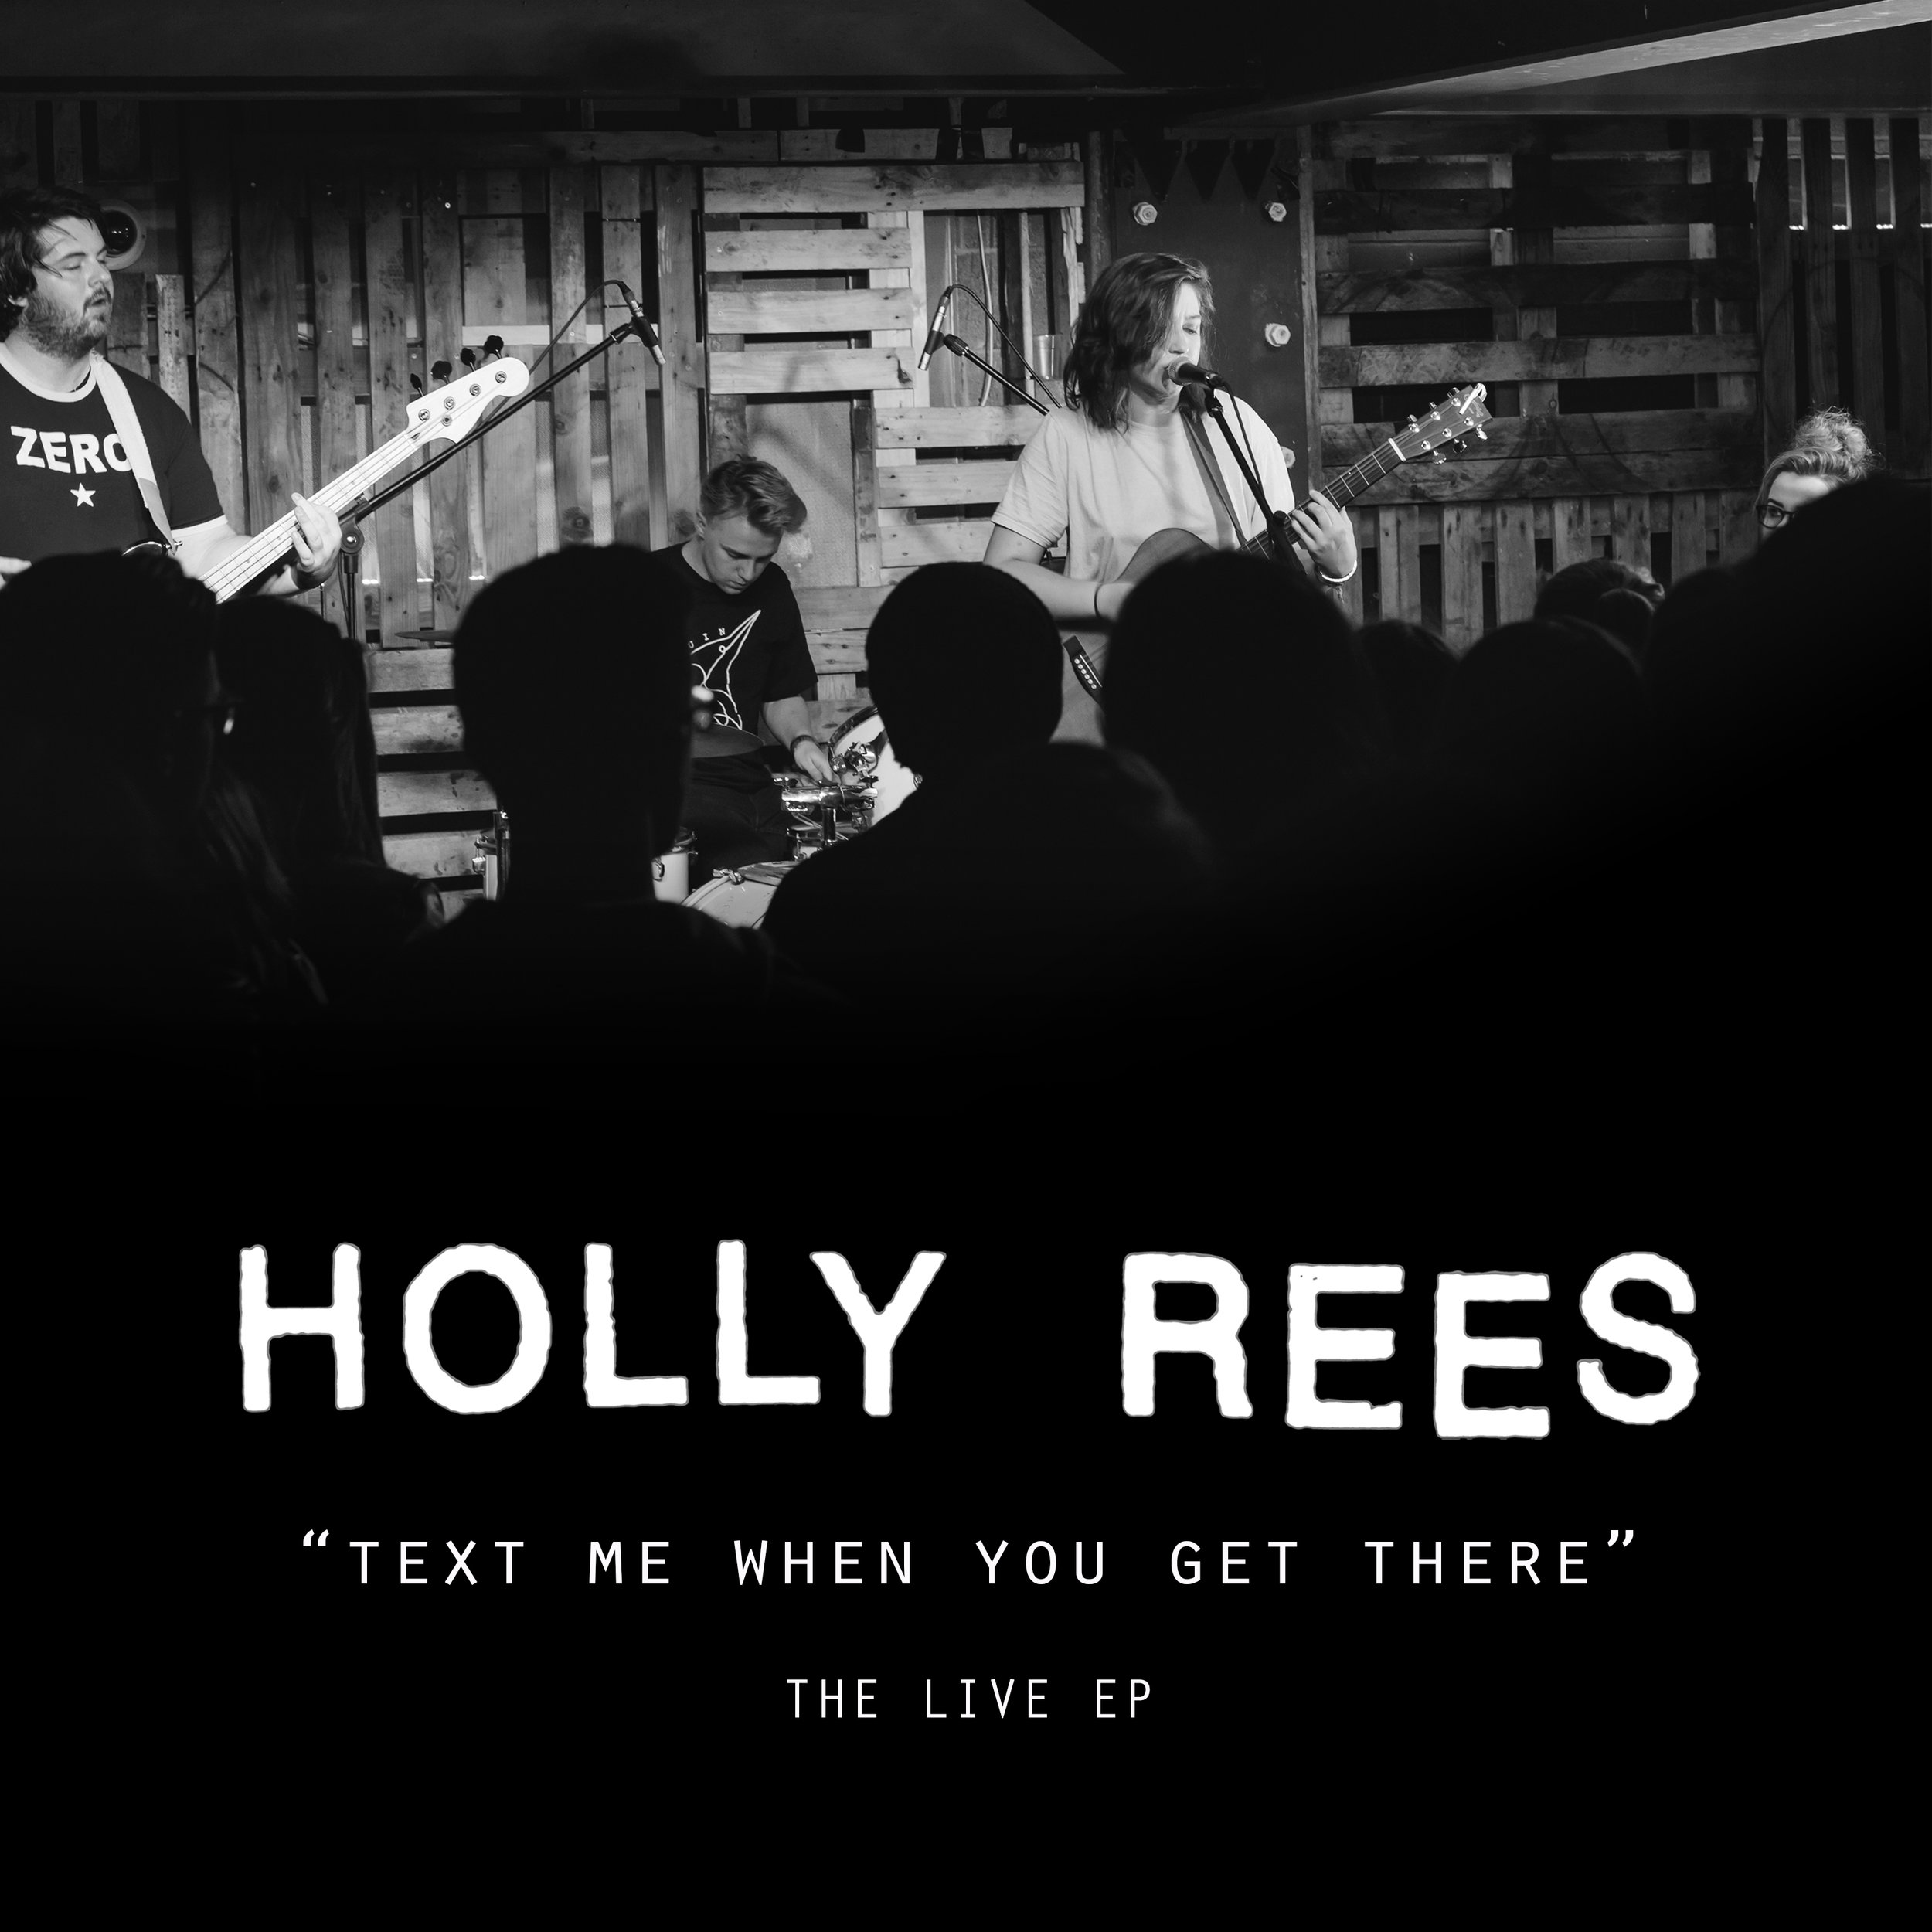 Holly Rees Text Me When You Get There The Live EP ARTWORK.jpg